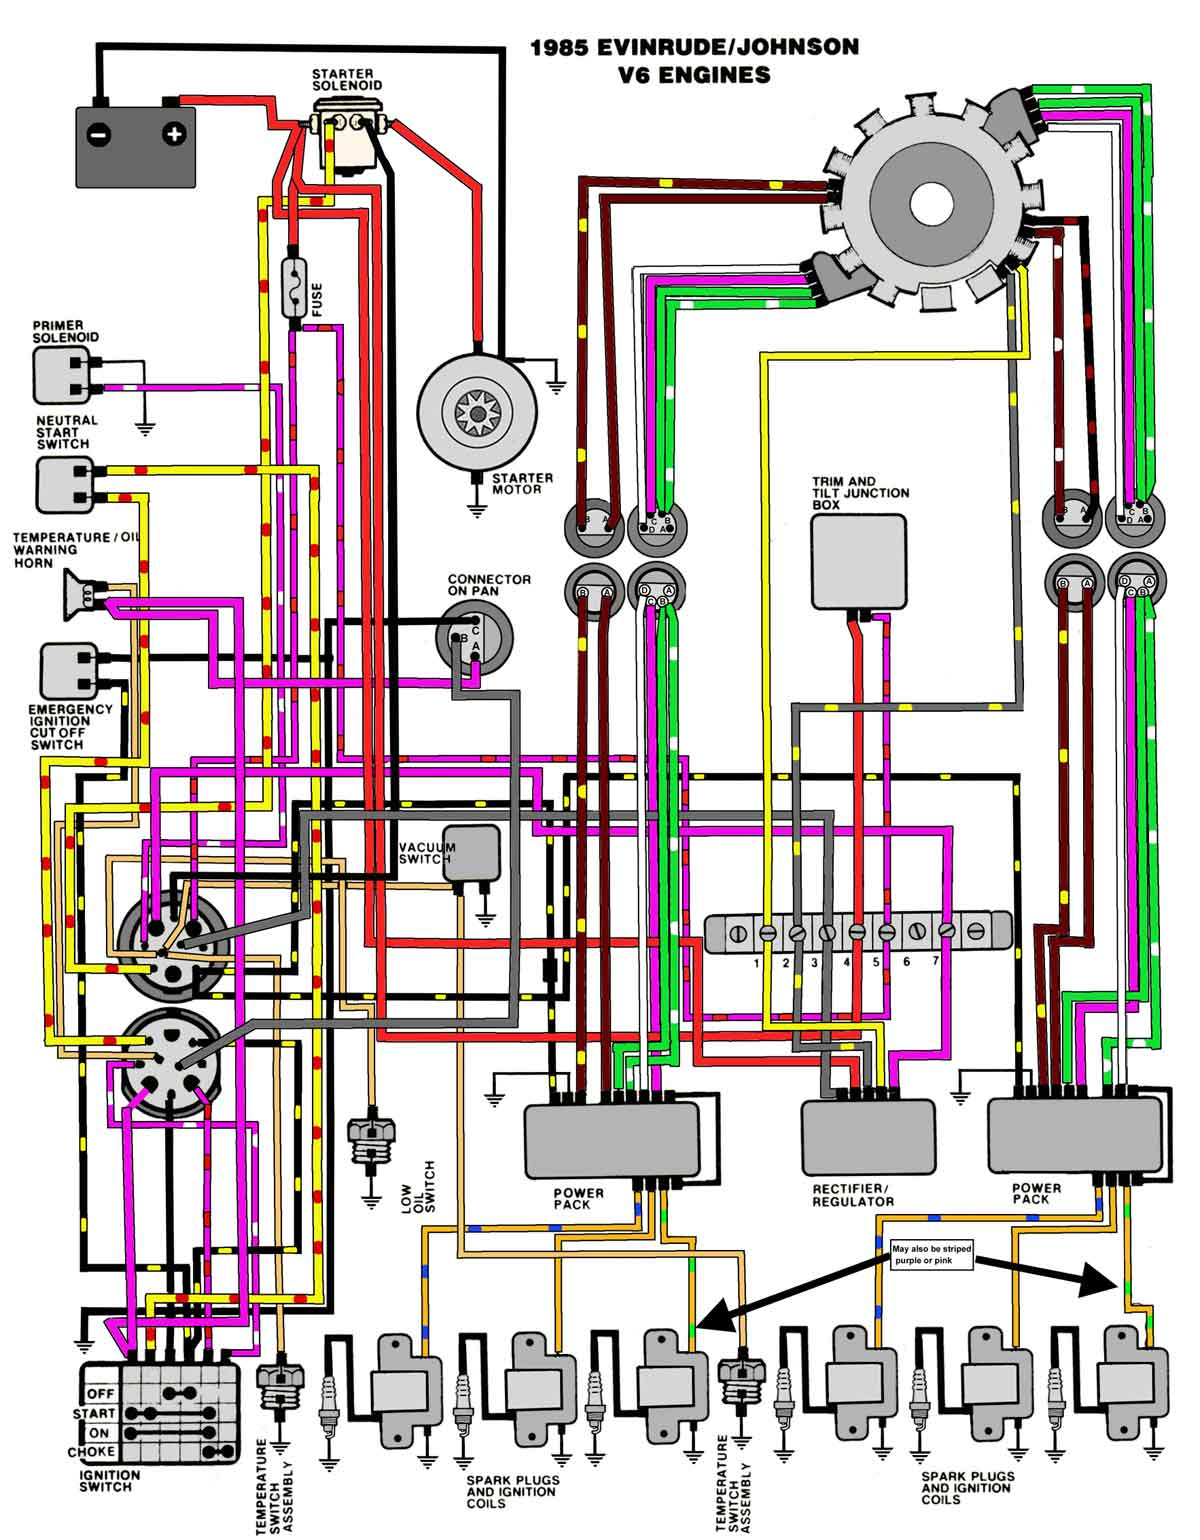 85_V6 mastertech marine evinrude johnson outboard wiring diagrams johnson ignition switch wiring diagram at reclaimingppi.co